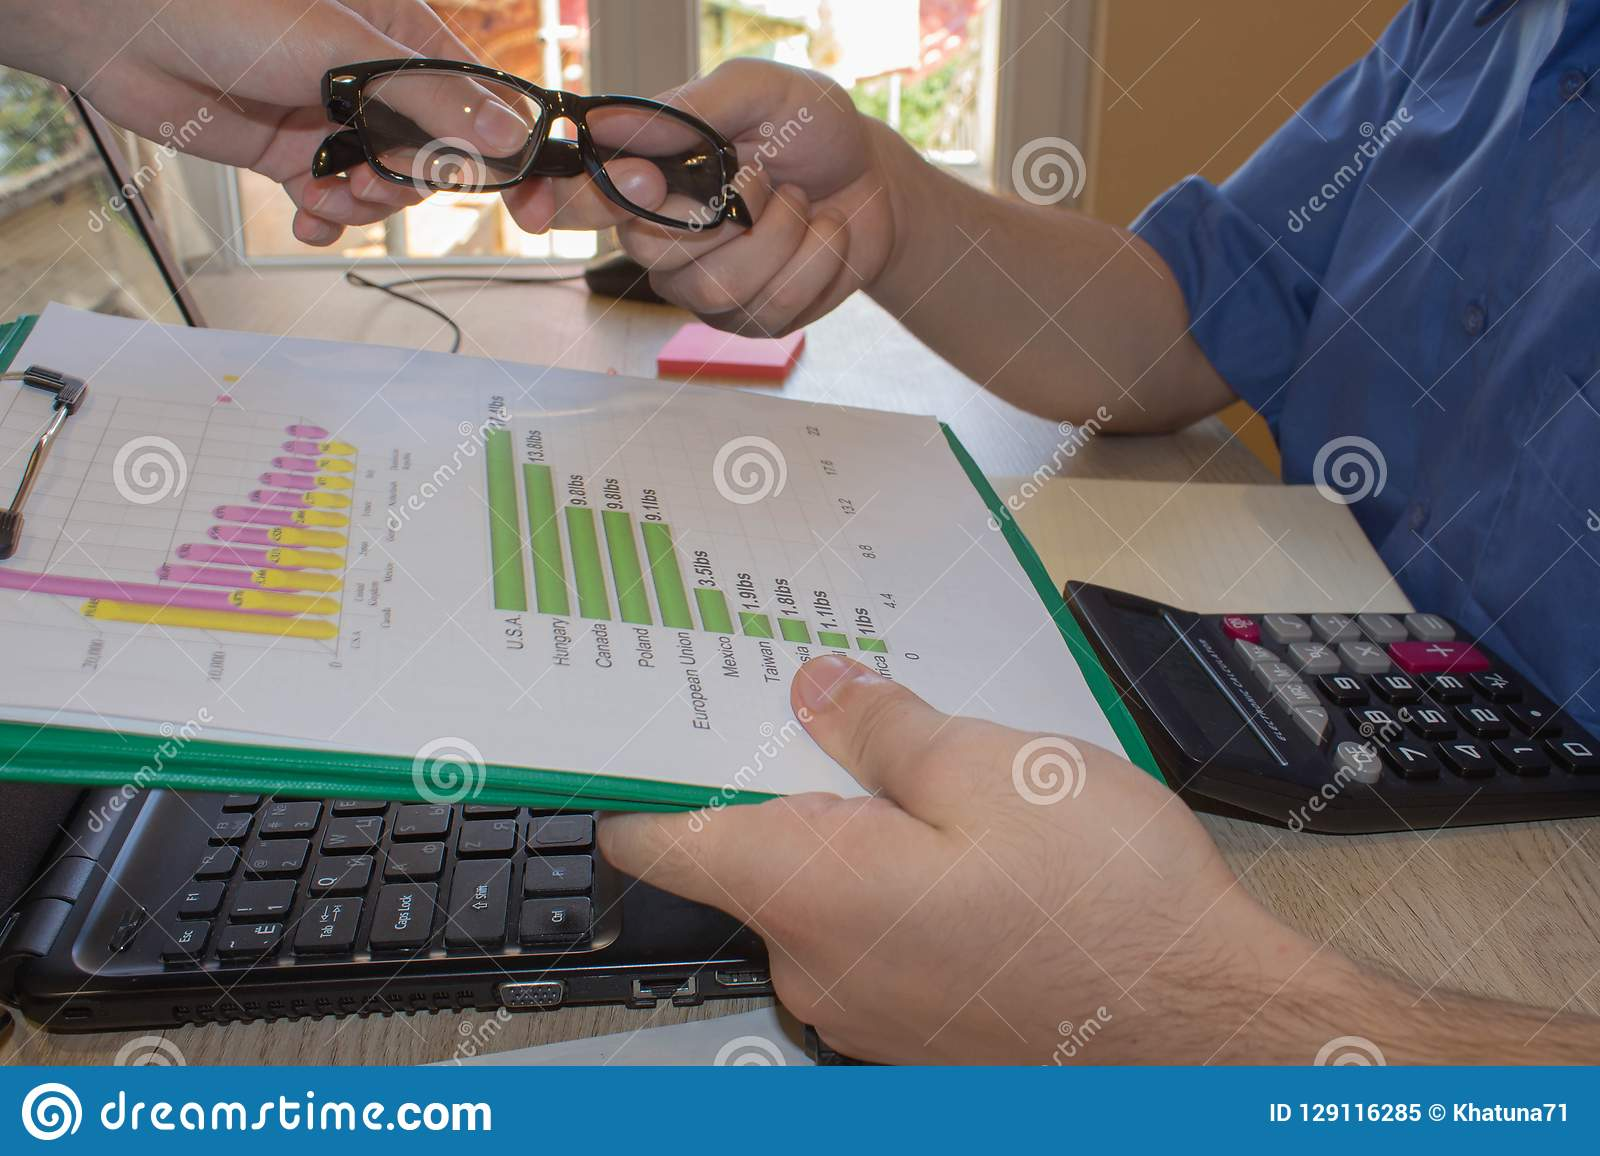 Male Working With Calculator And Business Document